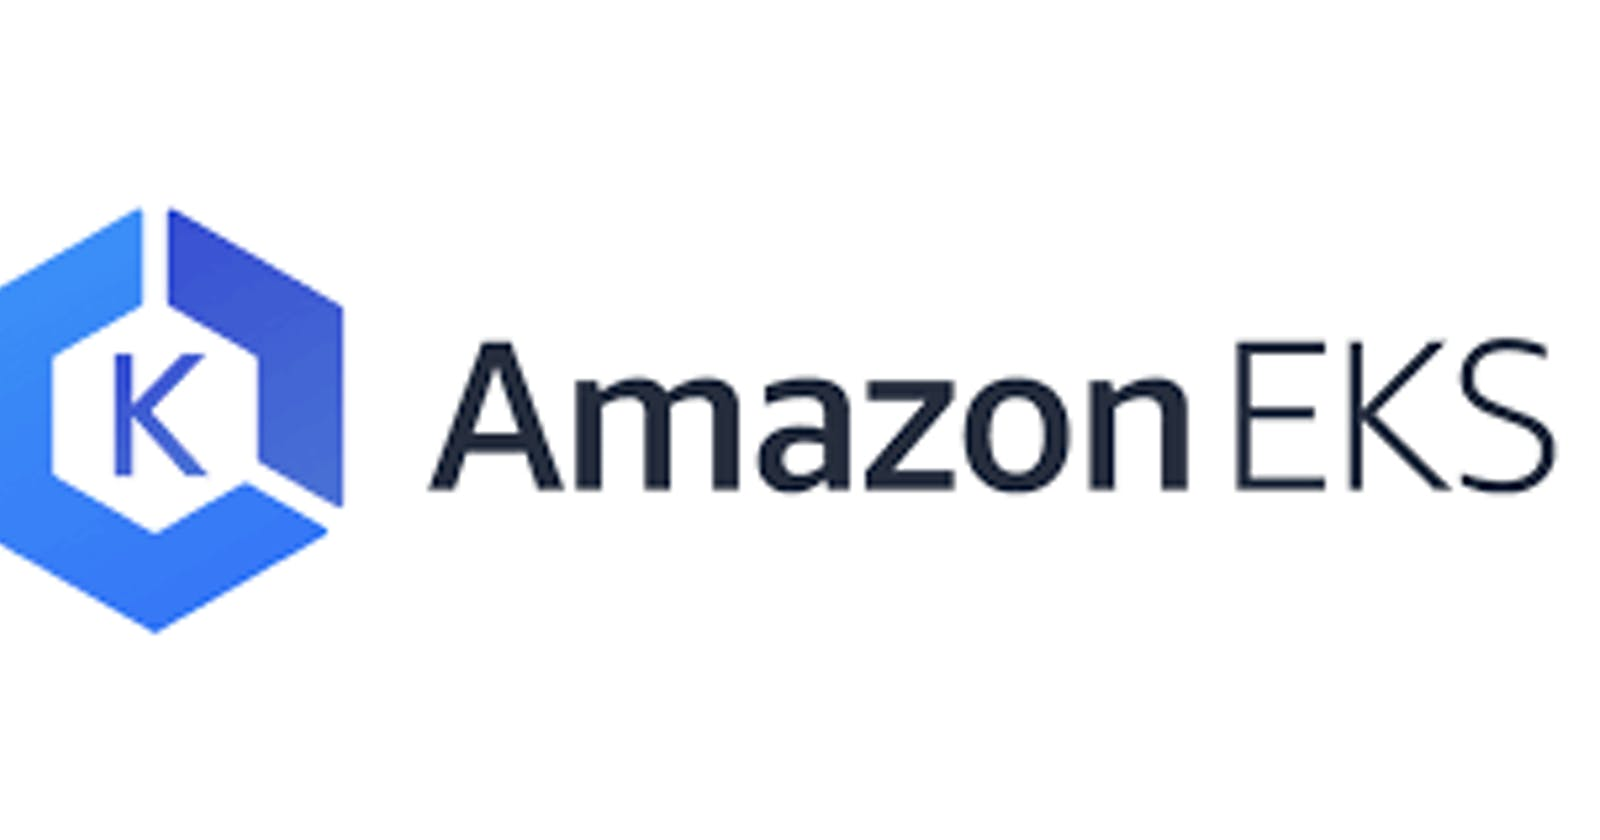 Infrastructure as Code (IaC) to deploy Managed EKS Cluster and Node Group on AWS - Part 1